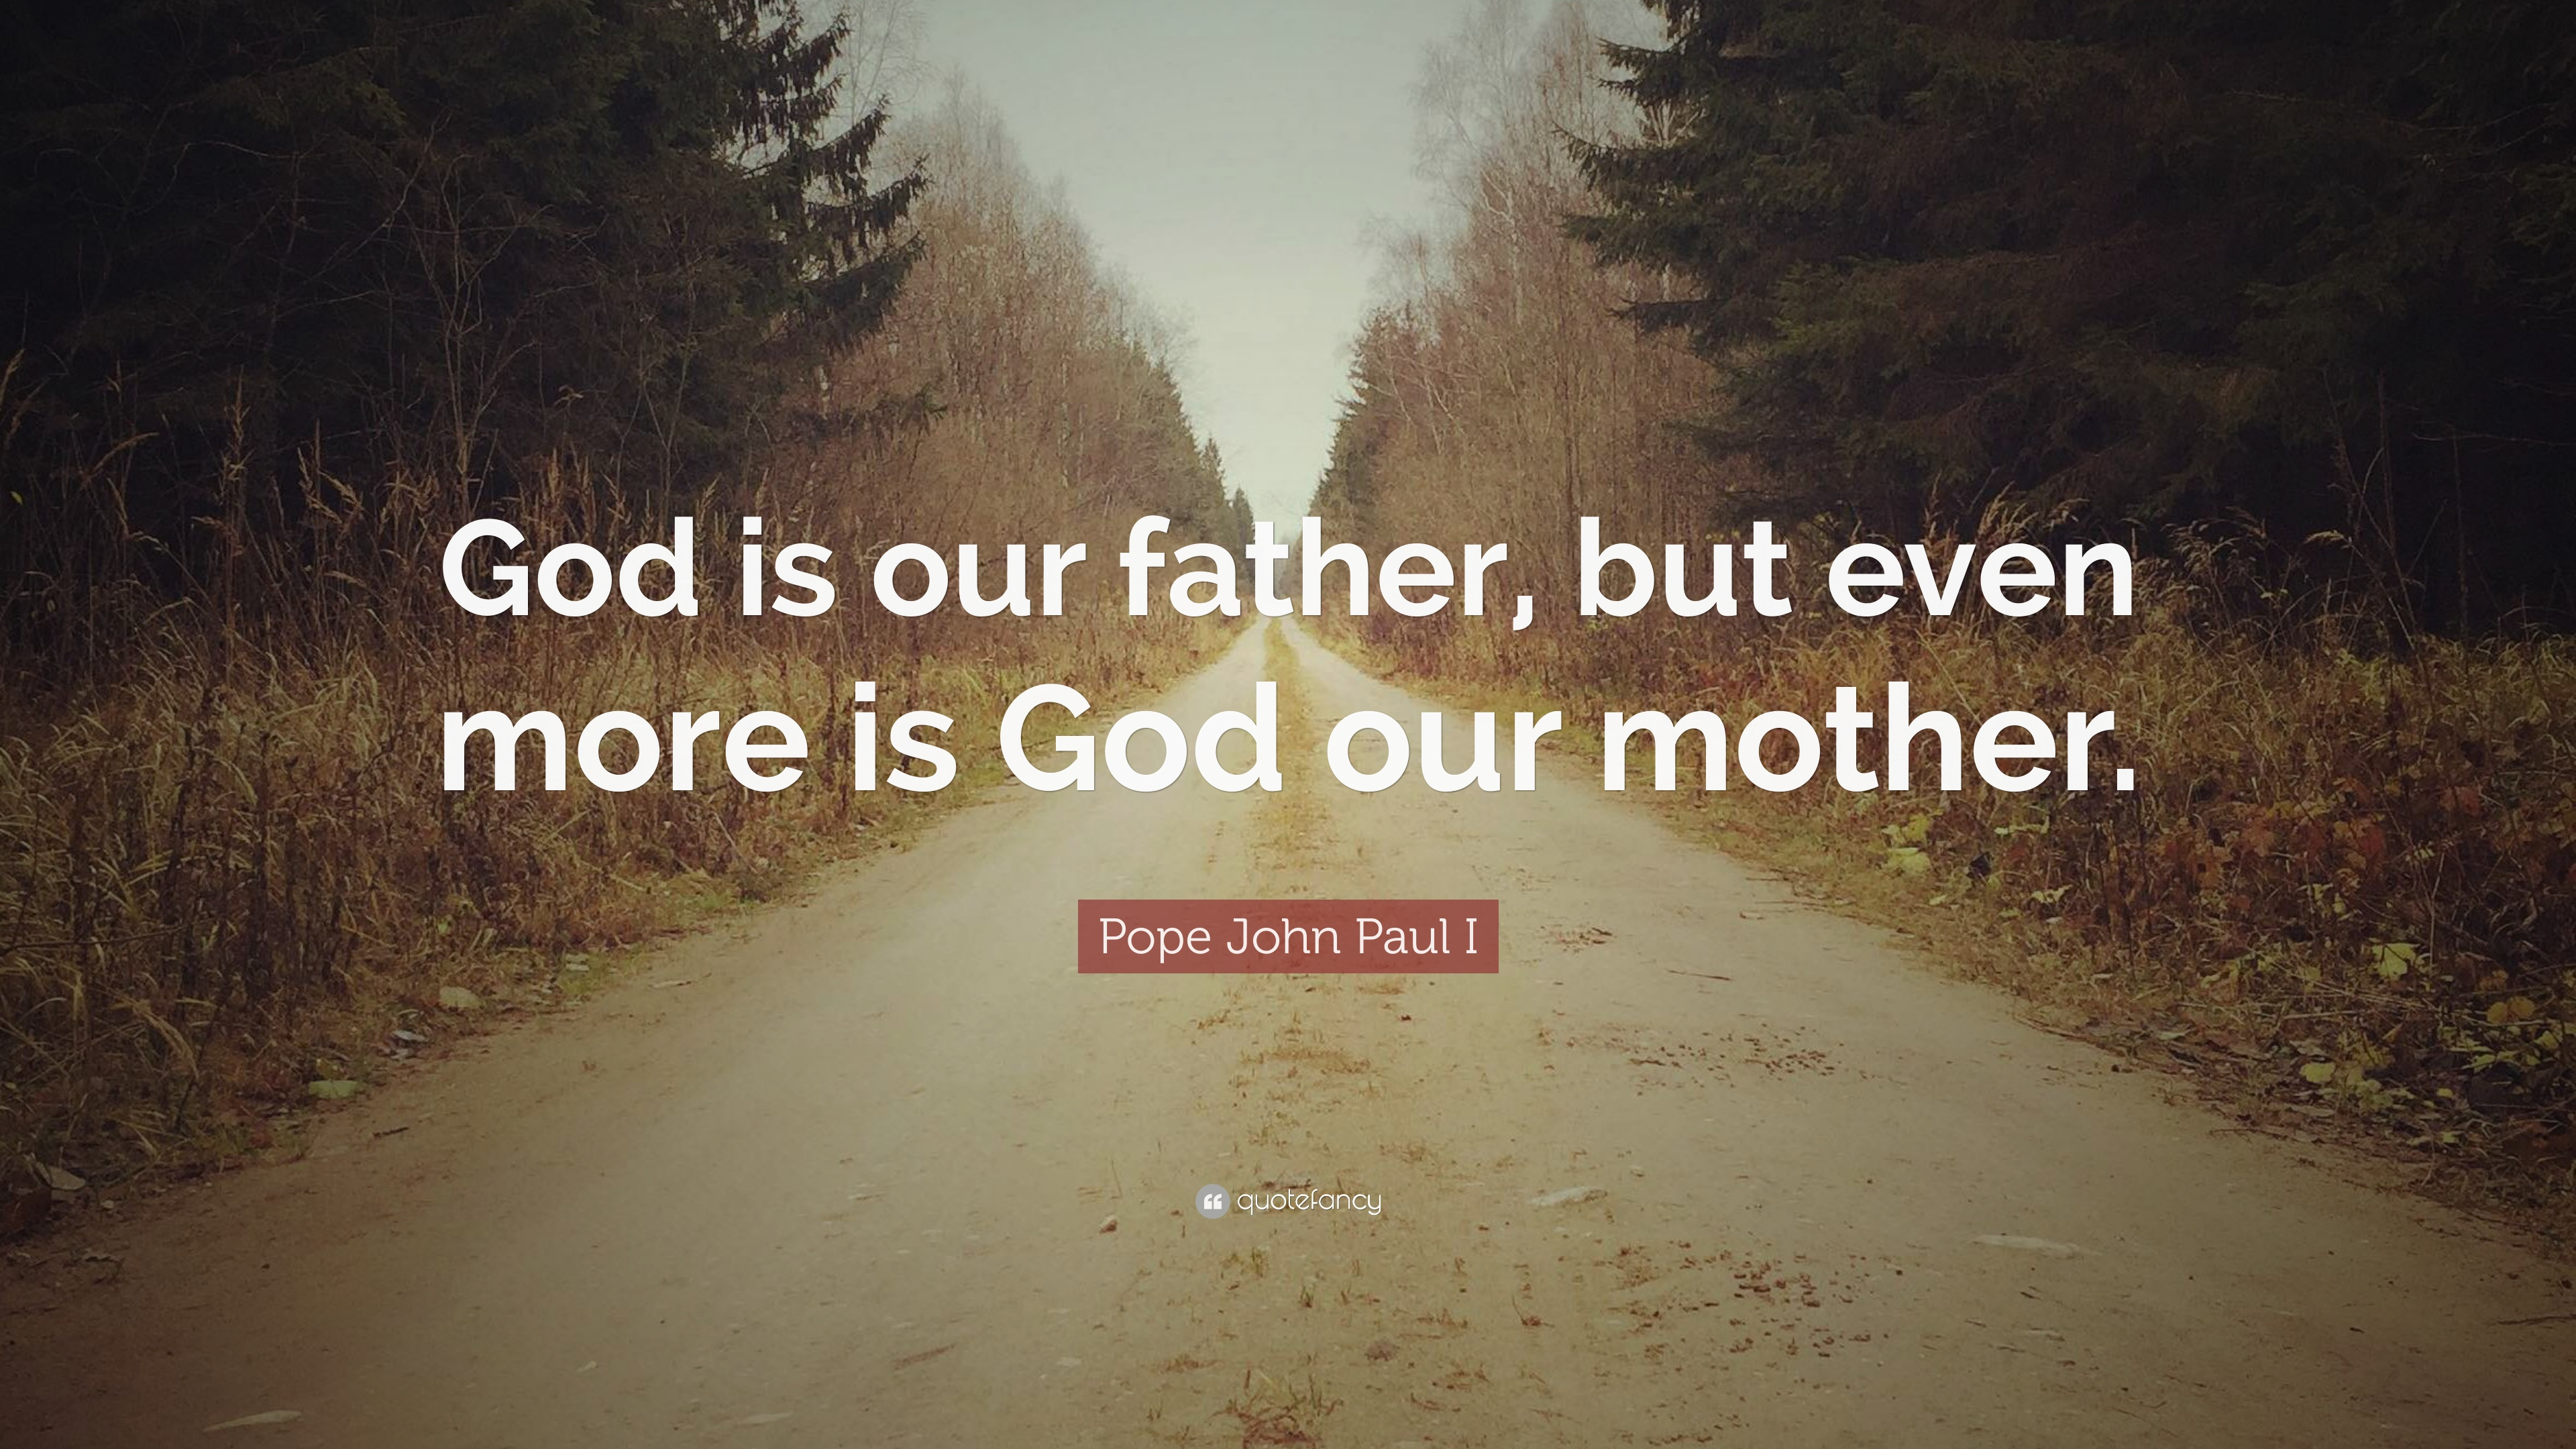 Pope John Paul I Quote God Is Our Father But Even More Is God Our